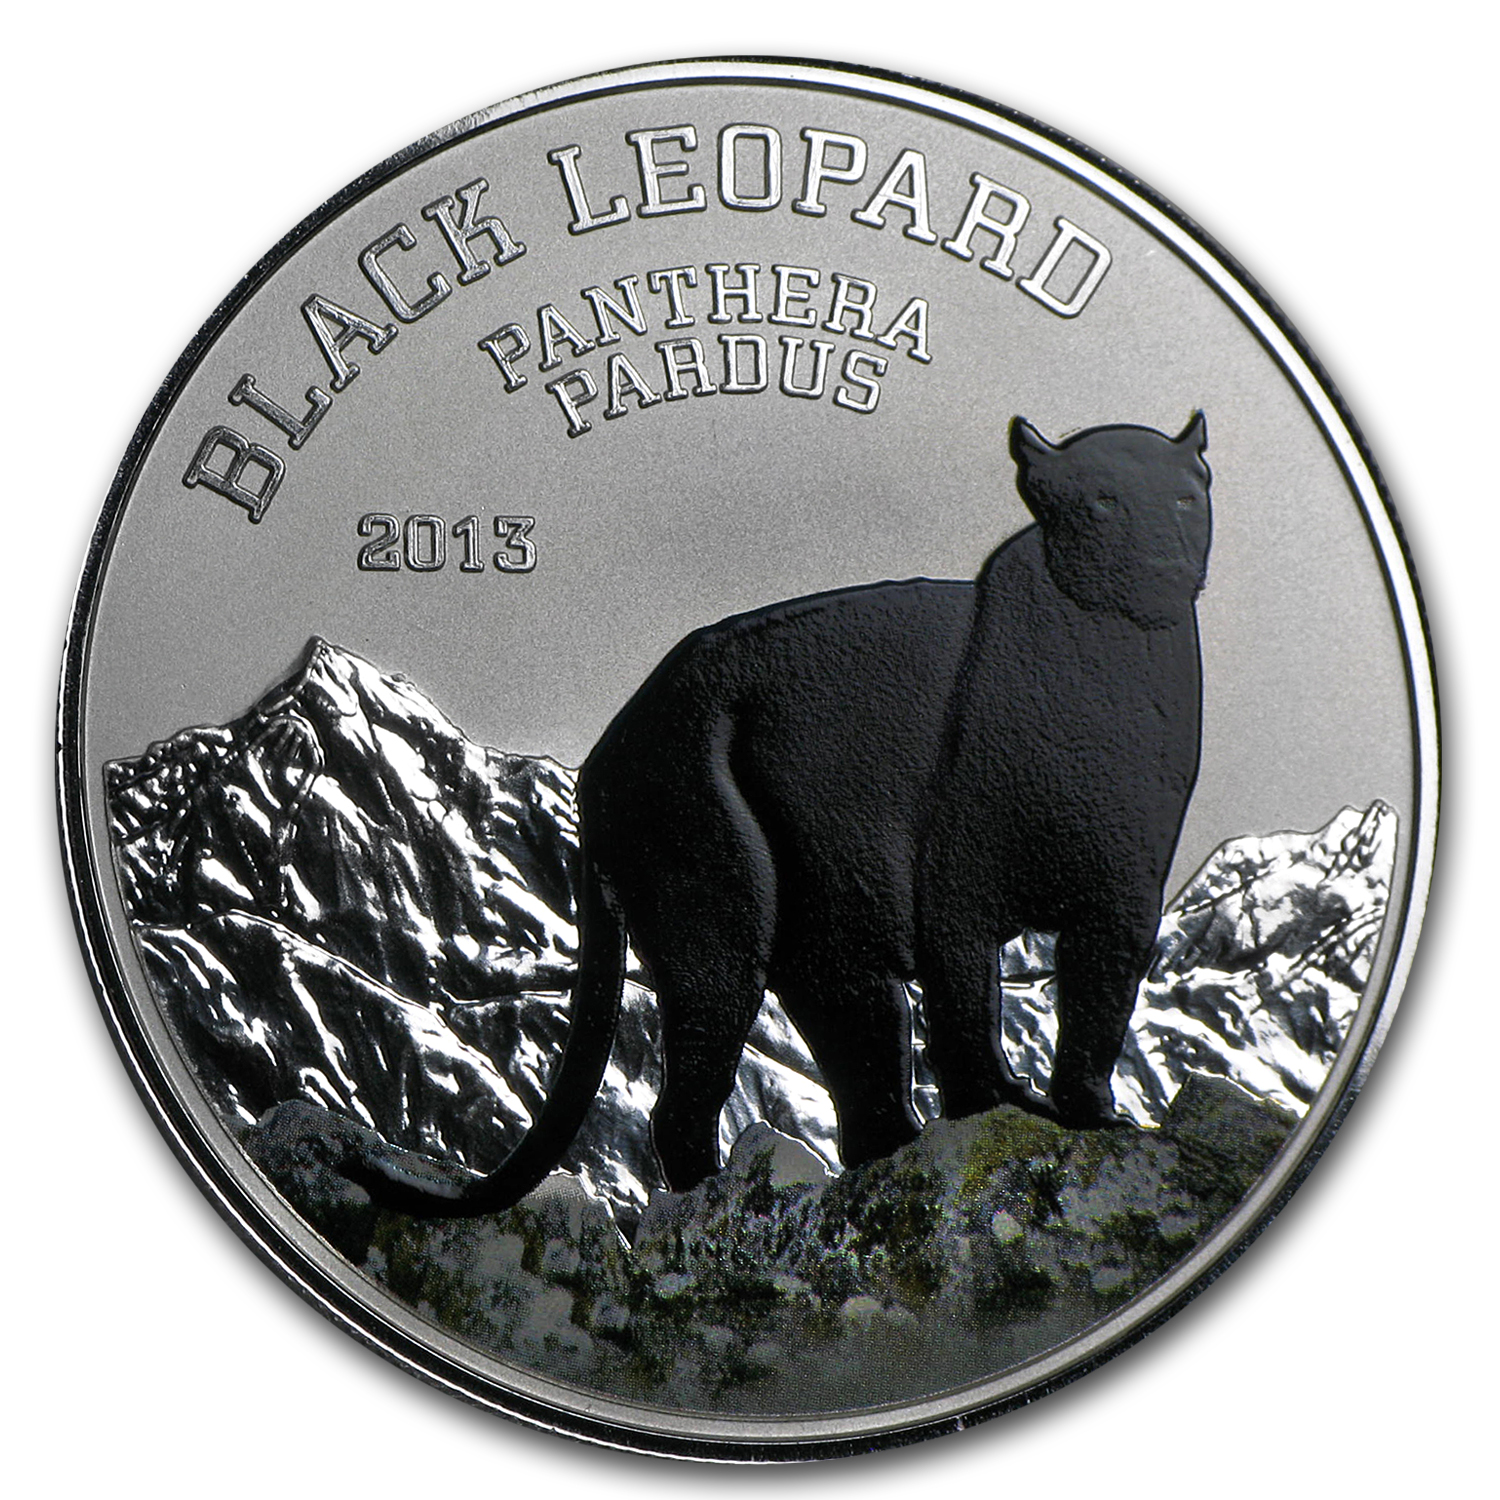 Congo Republic 2013 Silver Proof Black Beauties - Black Leopard